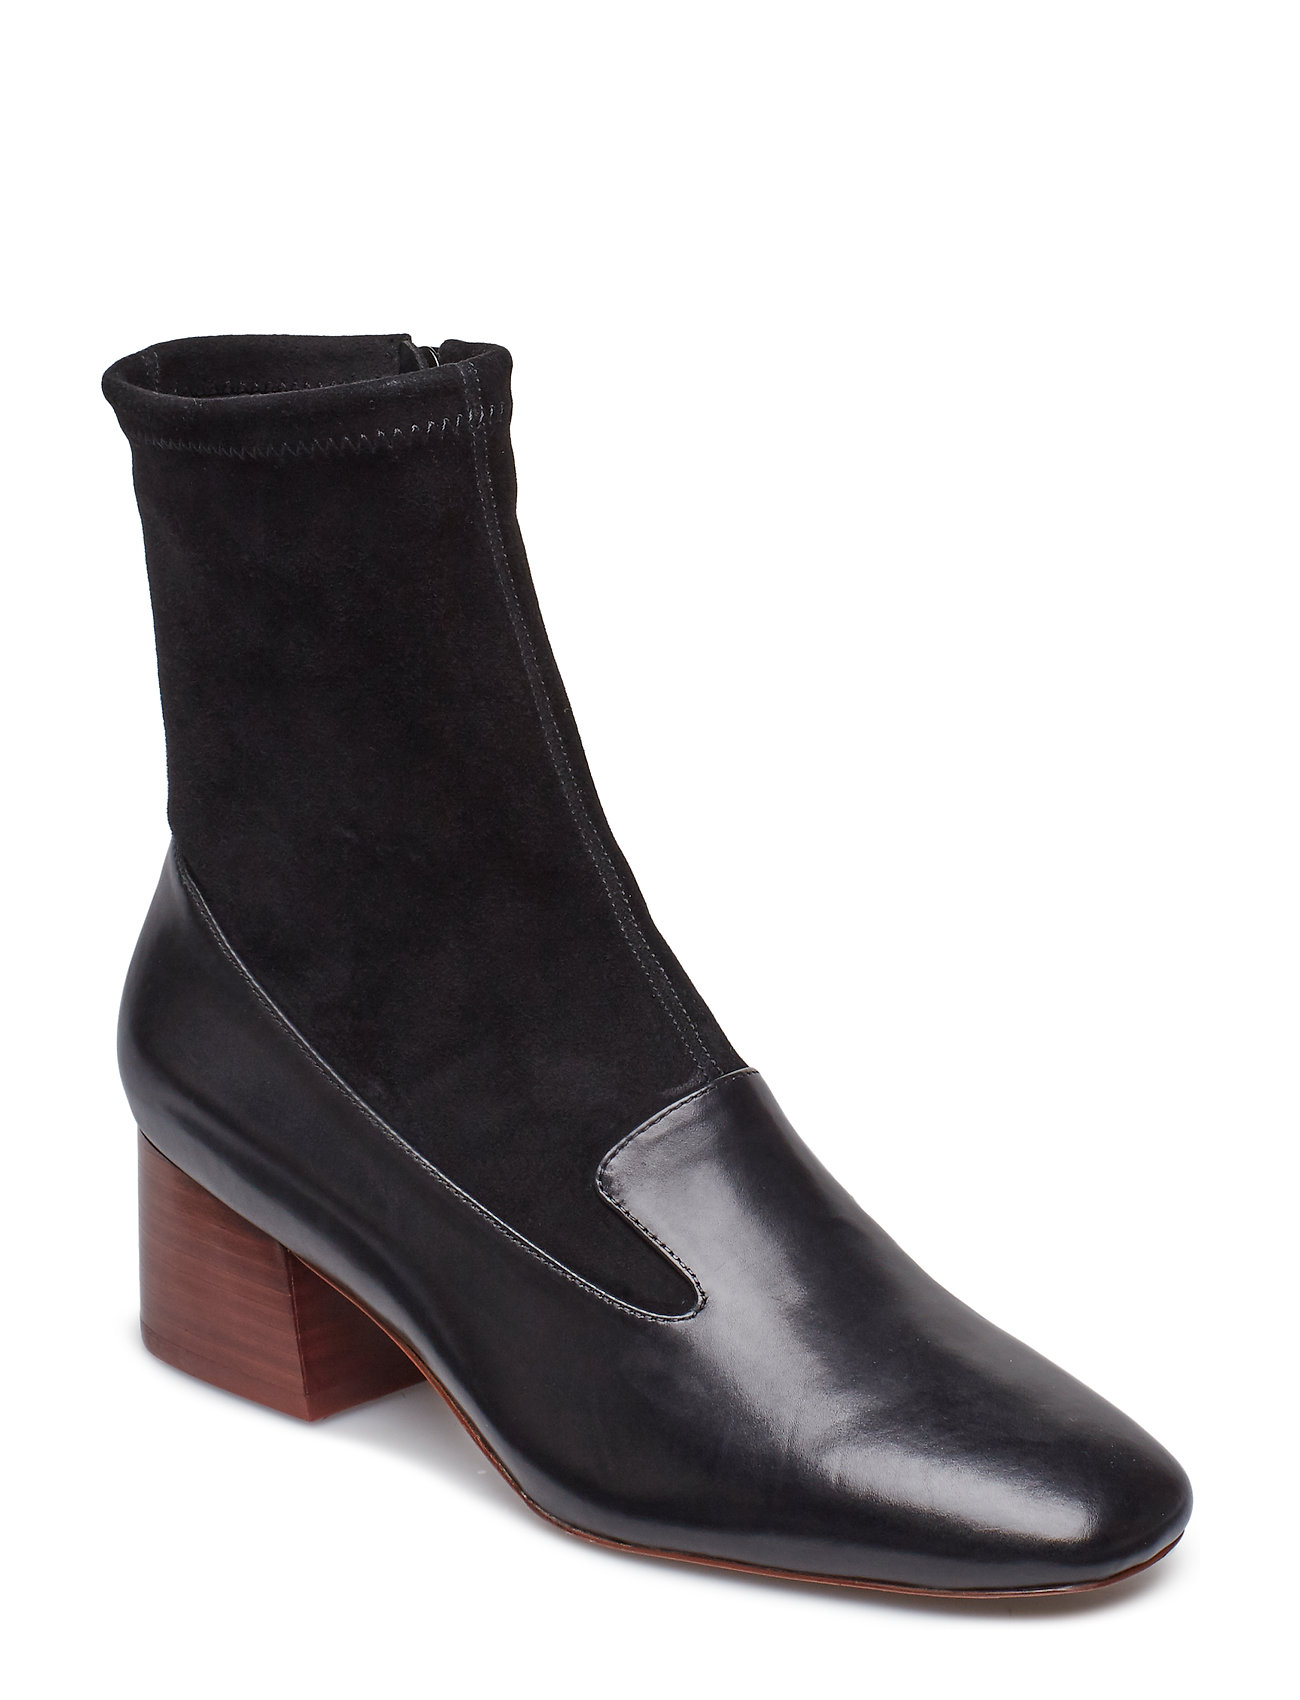 TIGER OF SWEDEN Bottasino Shoes Boots Ankle Boots Ankle Boots With Heel Schwarz TIGER OF SWEDEN